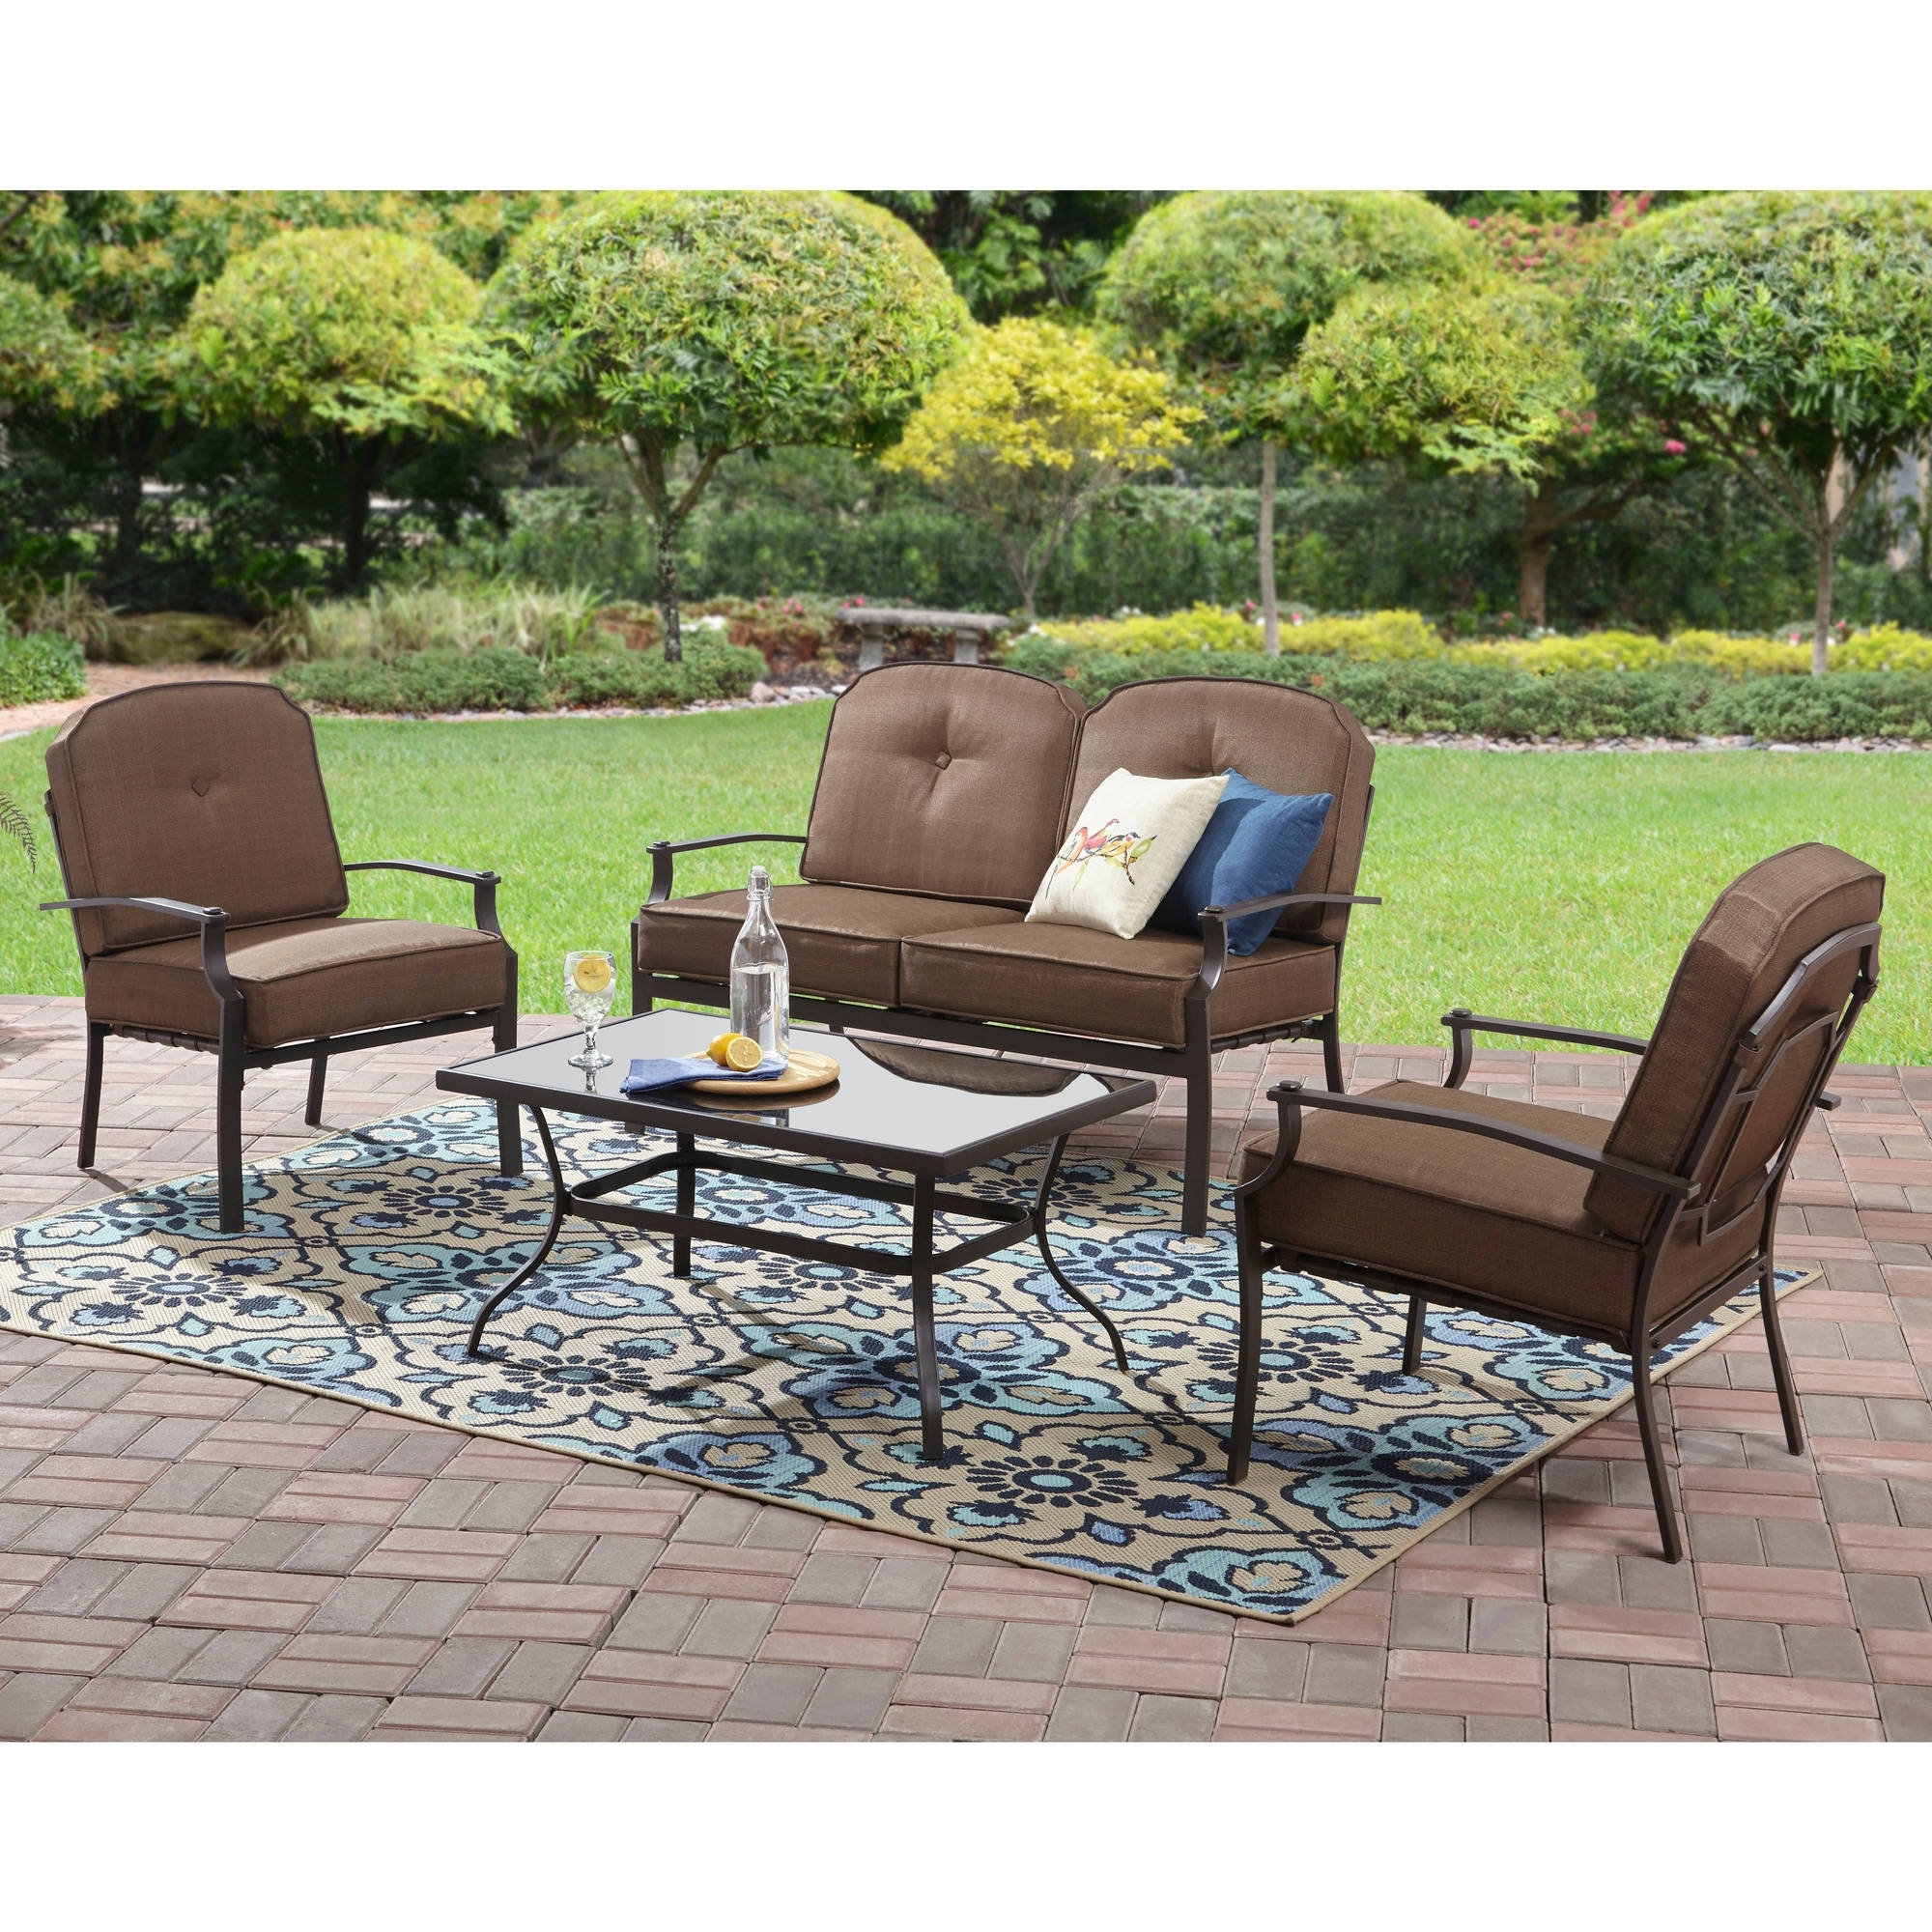 Mainstays Spring Creek 5 Piece Patio Dining Set, Seats 4 – Walmart With Well Known Dot Patio Conversation Sets (View 2 of 15)